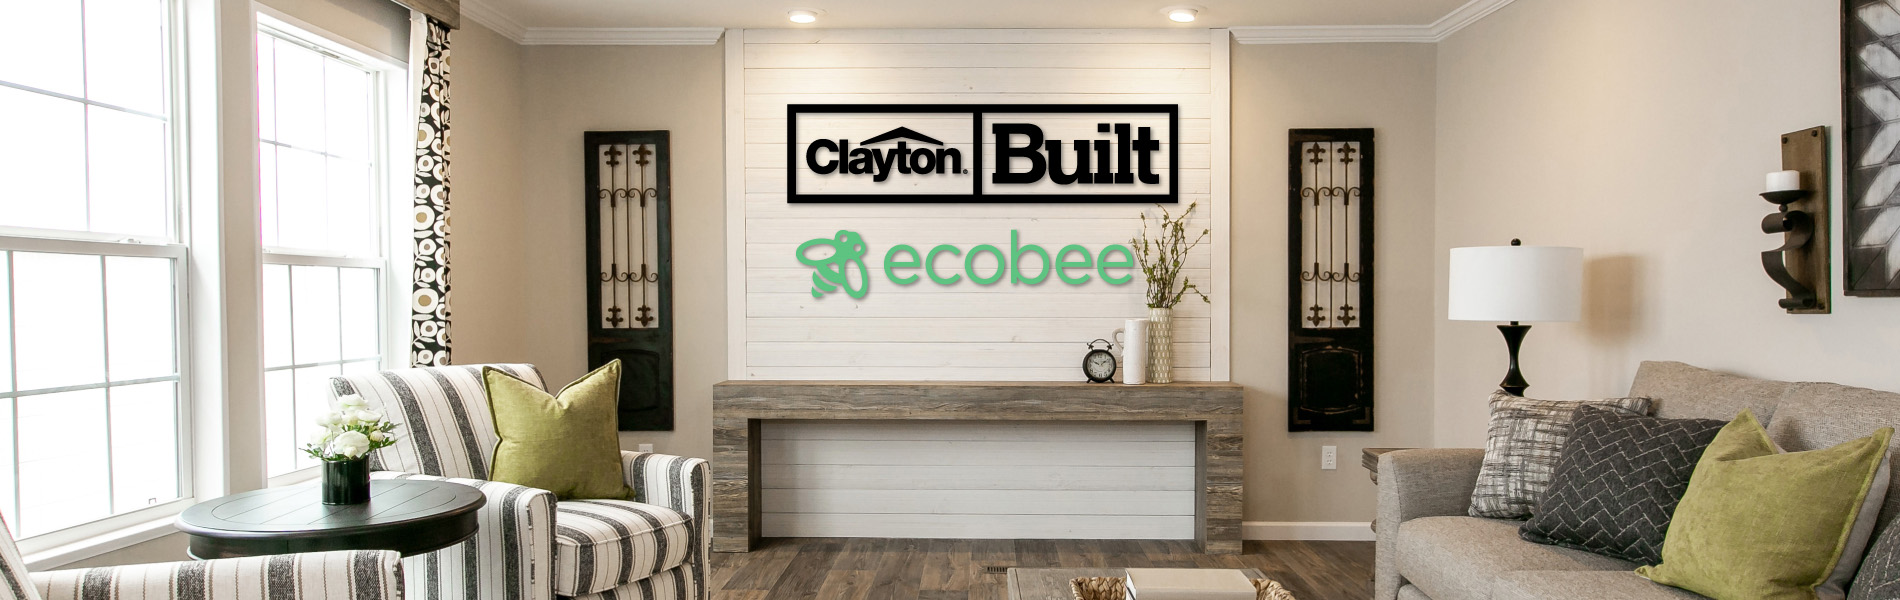 Clayton and ecobee signs on a wall in a living room